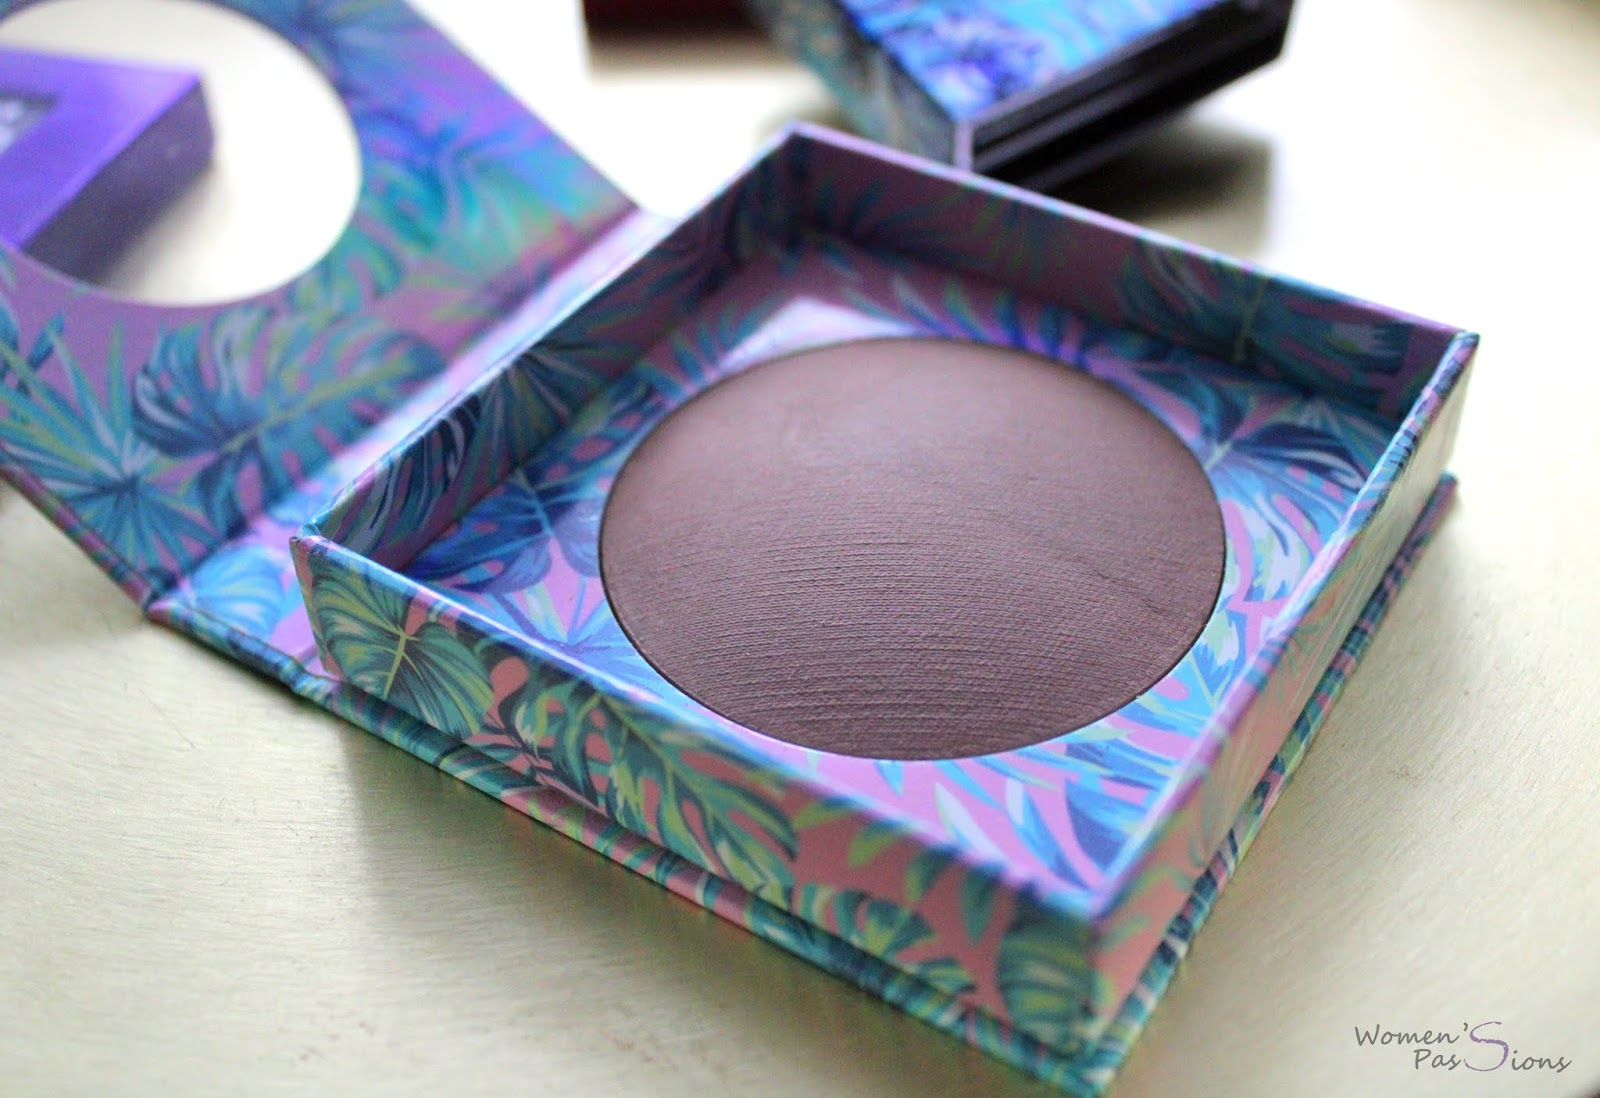 MY SECRET, TROPICAL KISS FACE'N'BODY BRONZING DUO POWDER